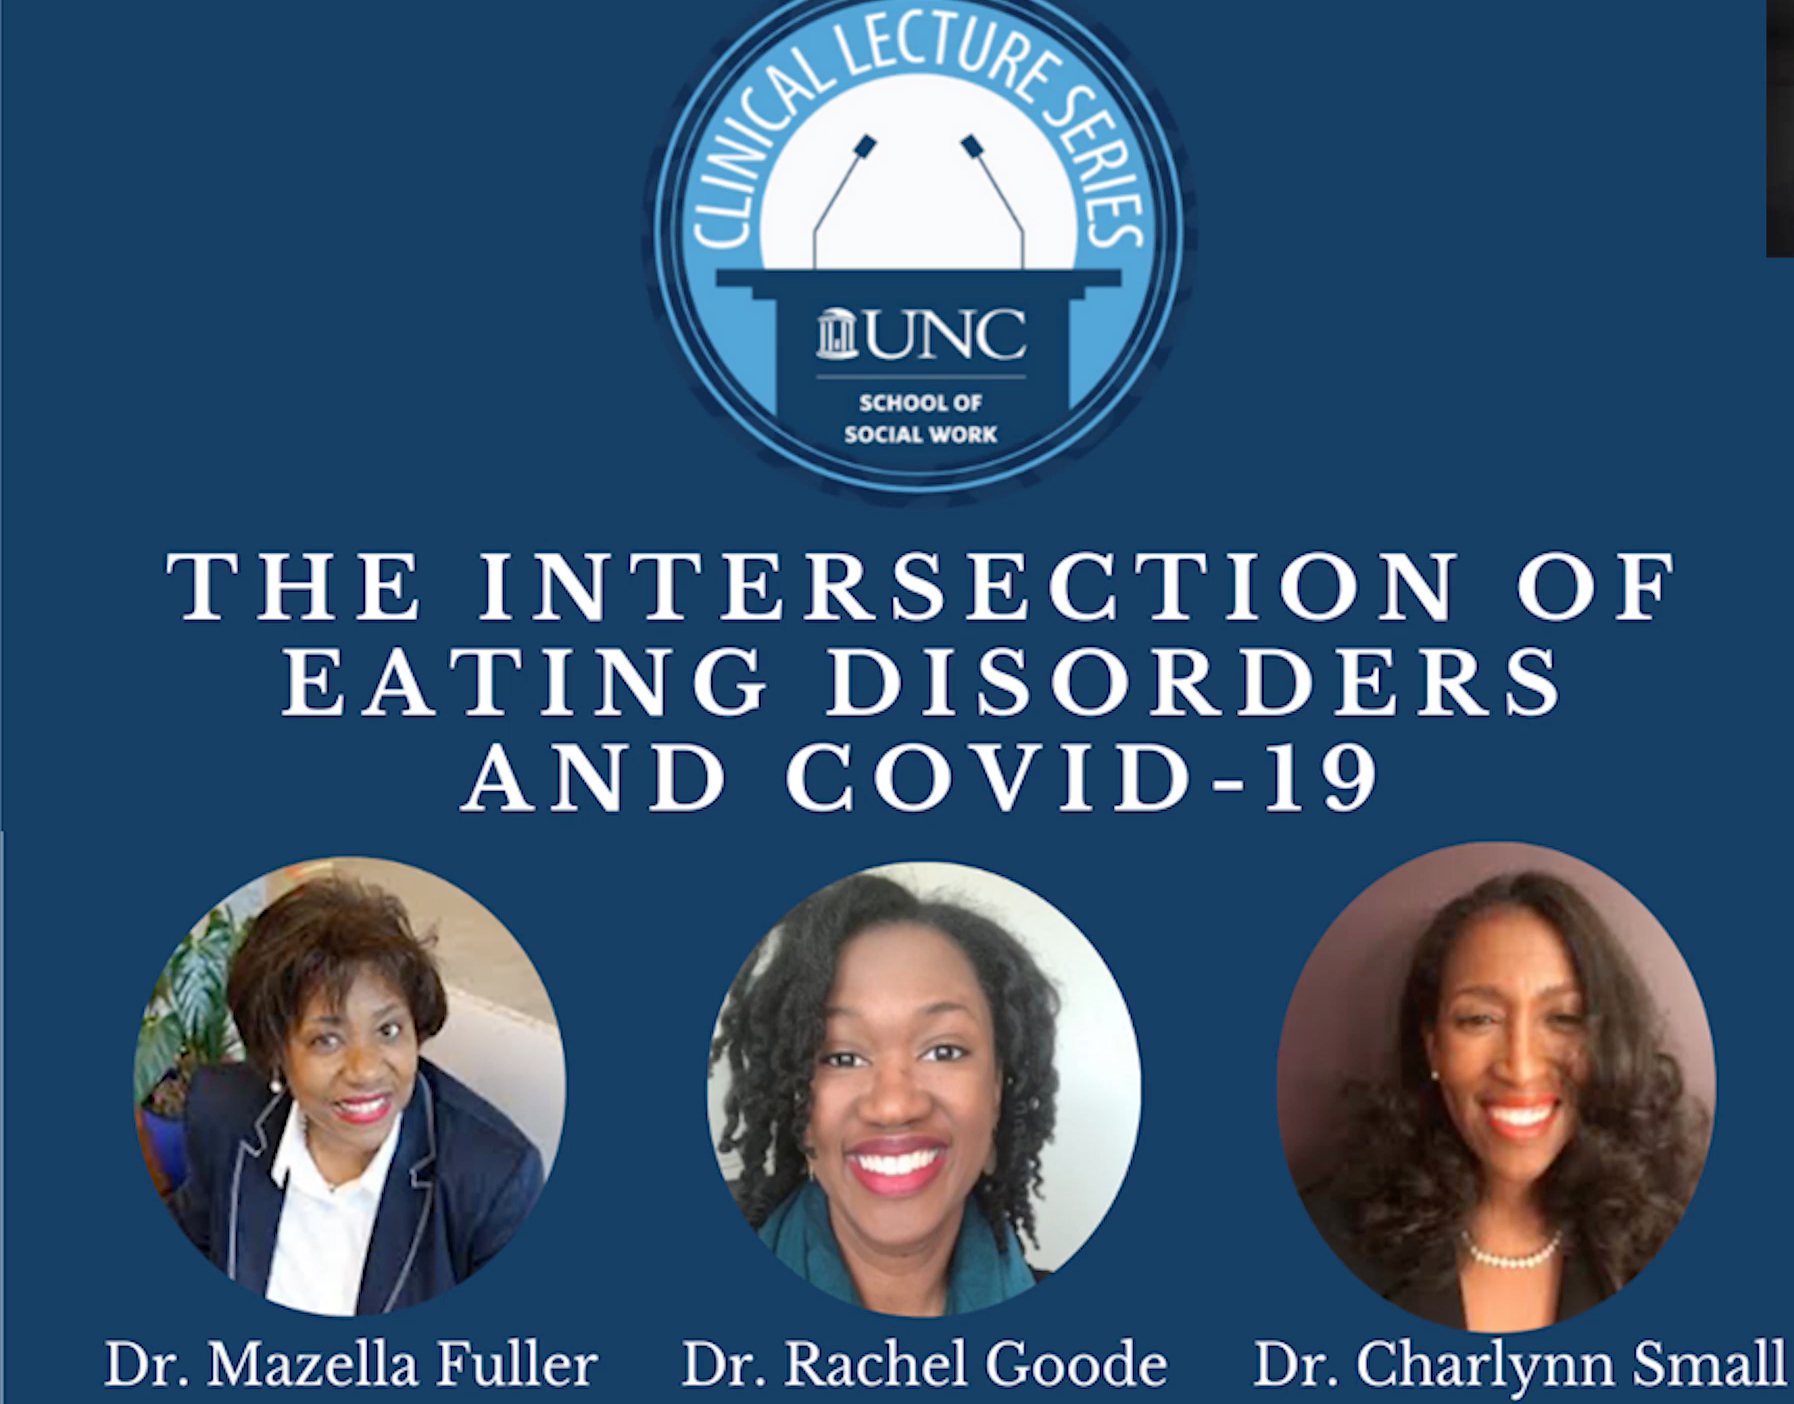 Clinical Lecture Series: Eating Disorders During COVID-19